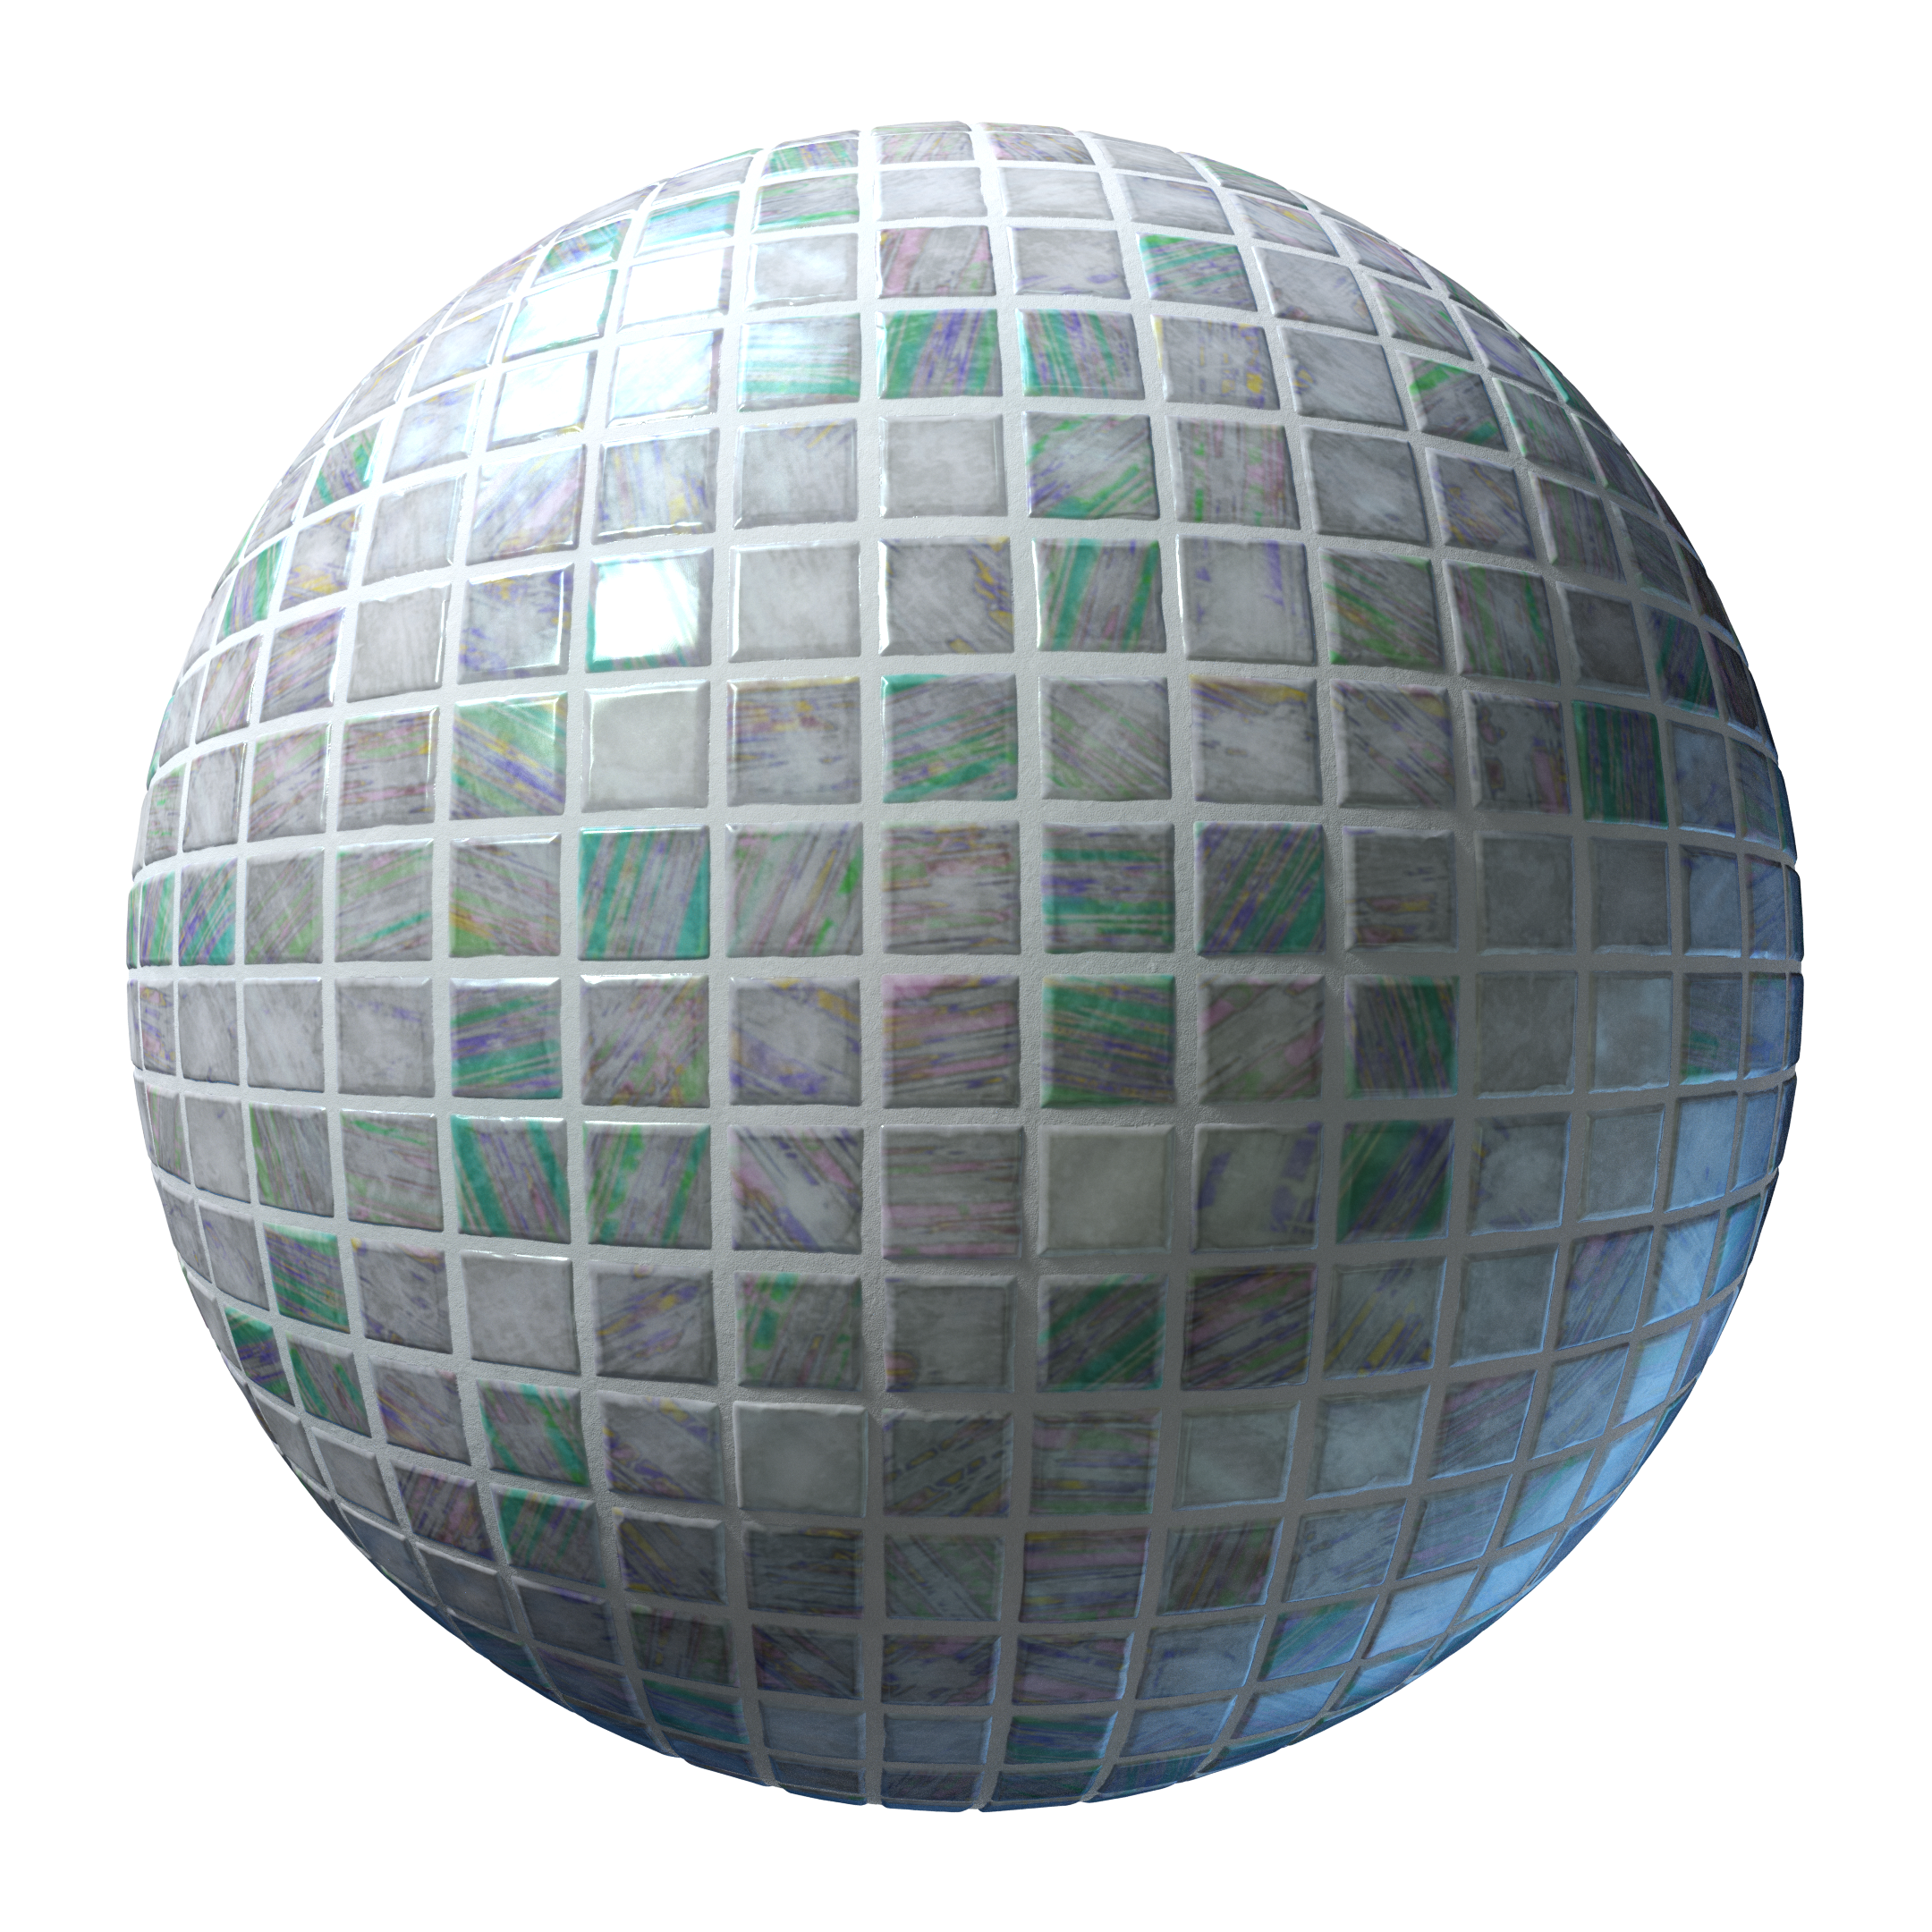 Tcom_Tiles_Glass4_thumb1.png